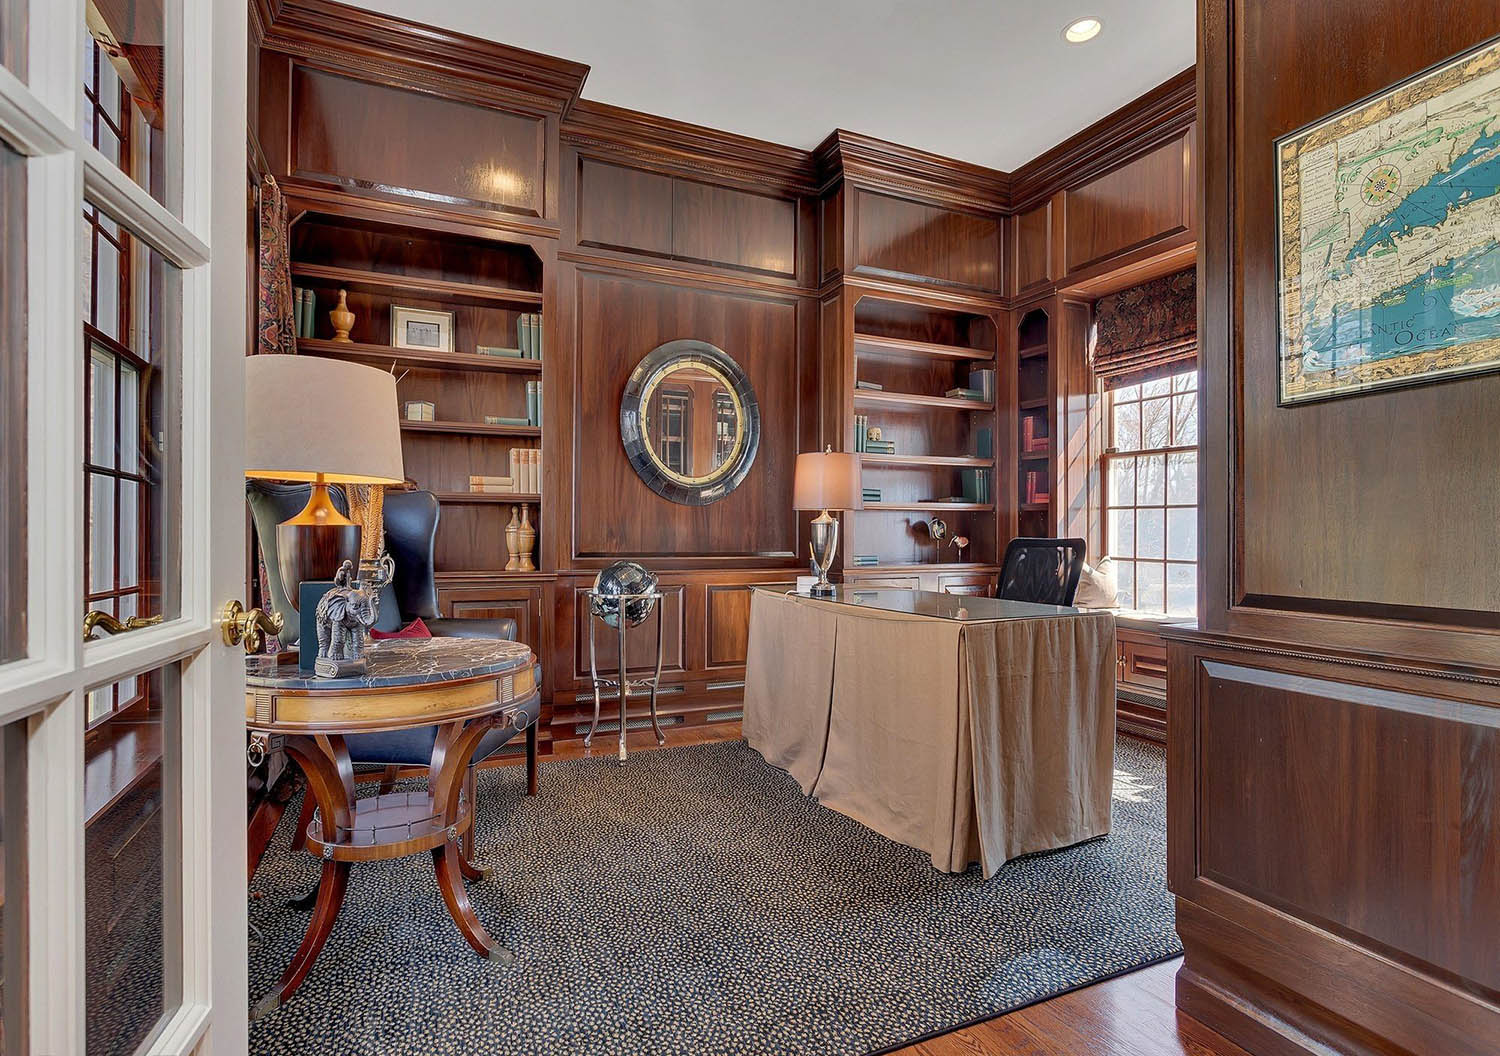 Home office with a clean wood wall panel design. Medium dark brown stain with a hint of yellow